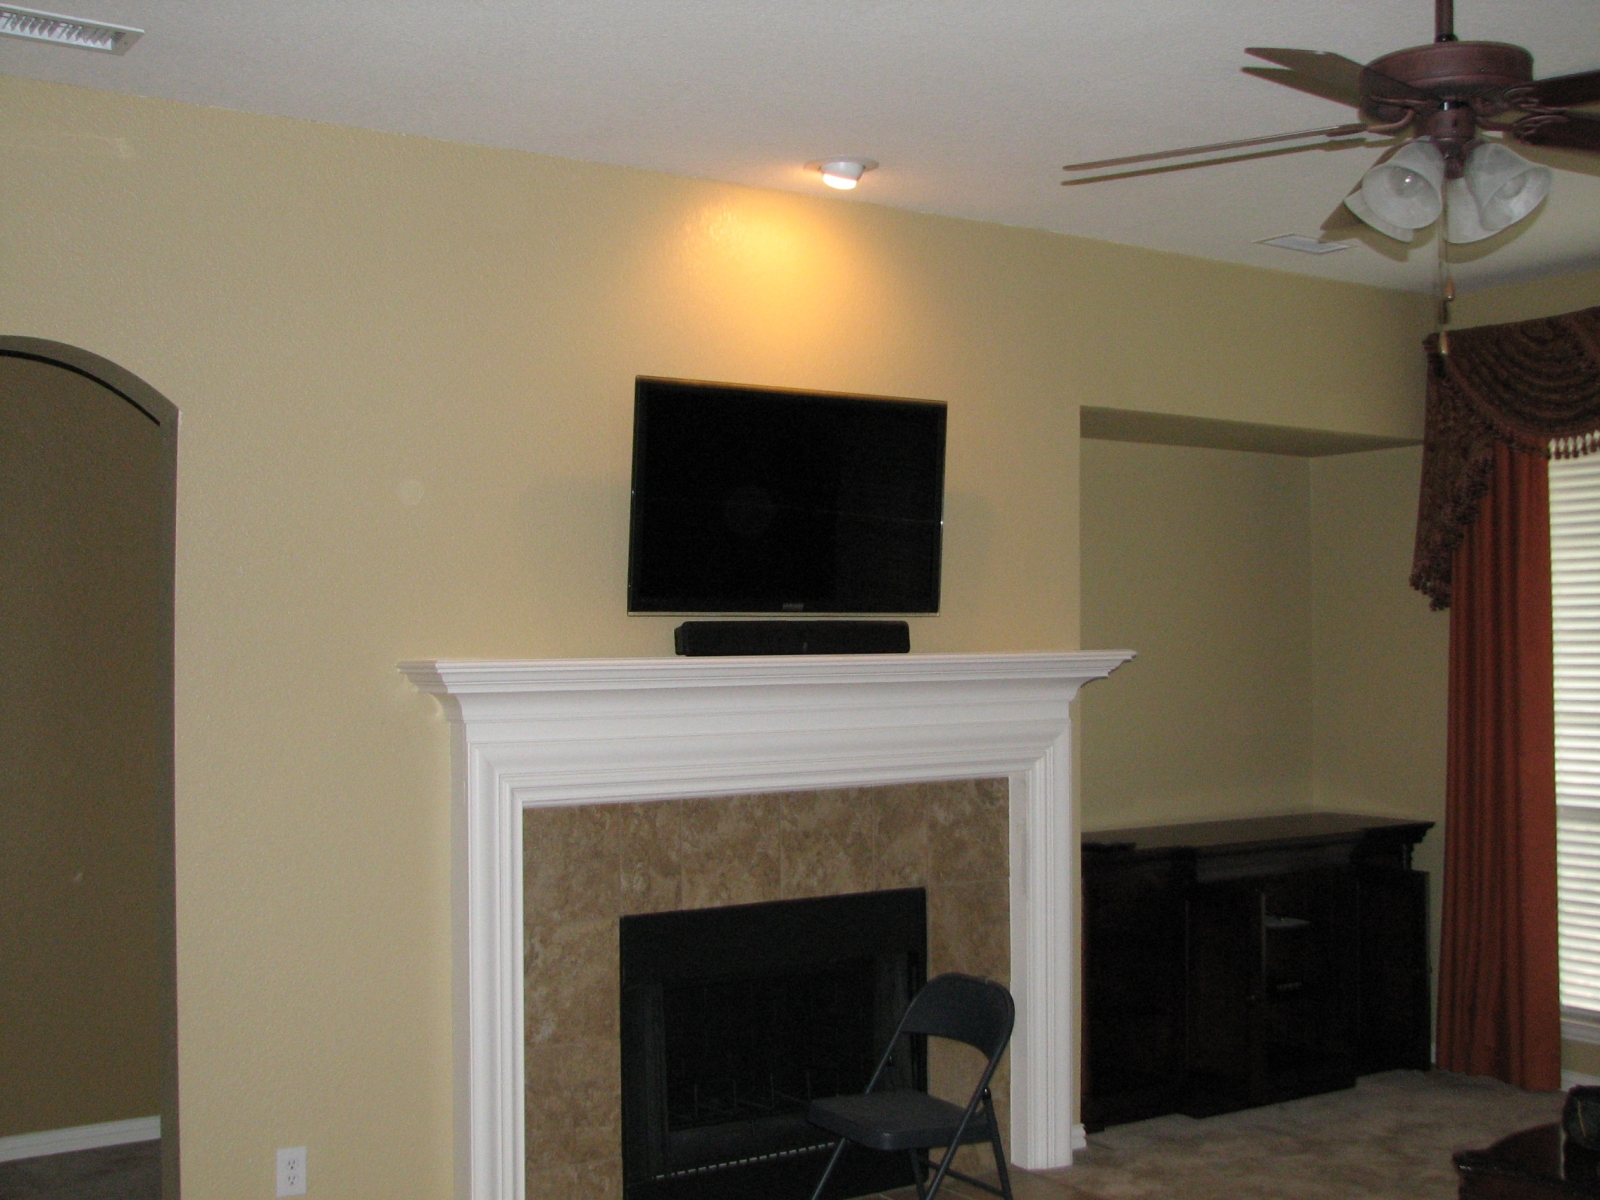 Photos Of Tv Mounted Over Fireplace Southlake Tx Pictures Posters News And Videos On Your